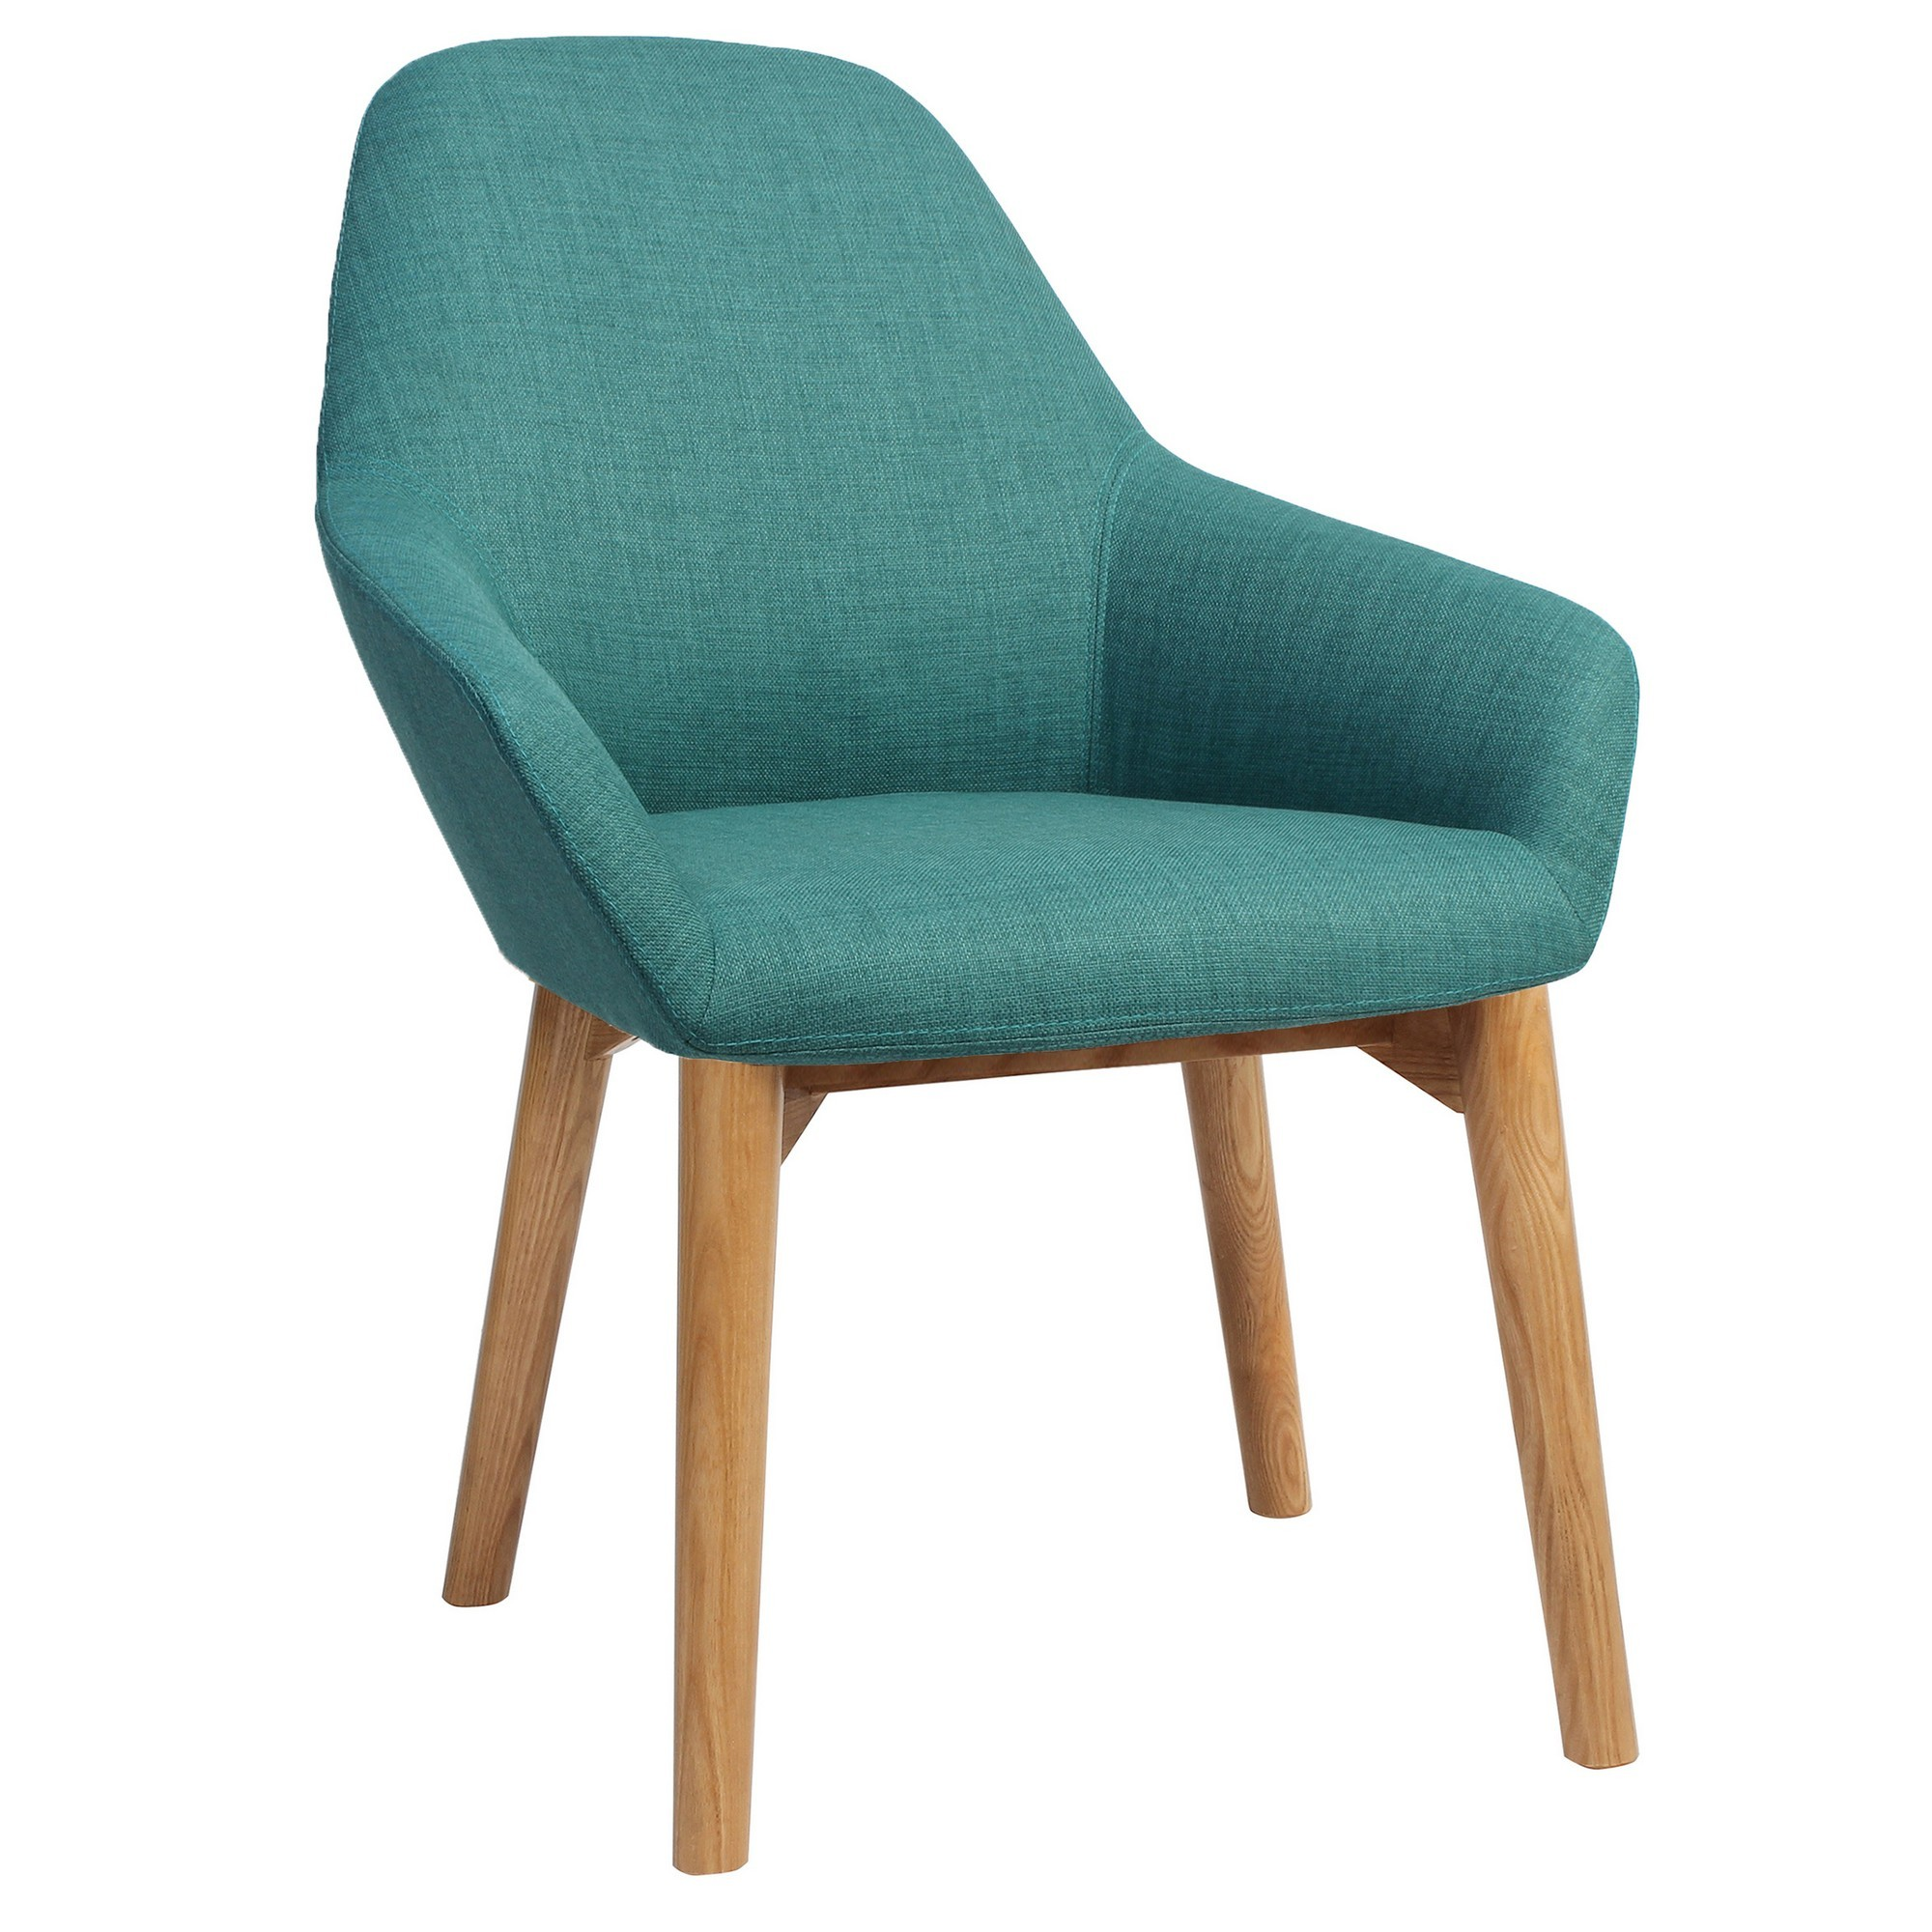 Bronte Commercial Grade Fabric Dining Armchair, Timber Leg, Teal / Light Oak